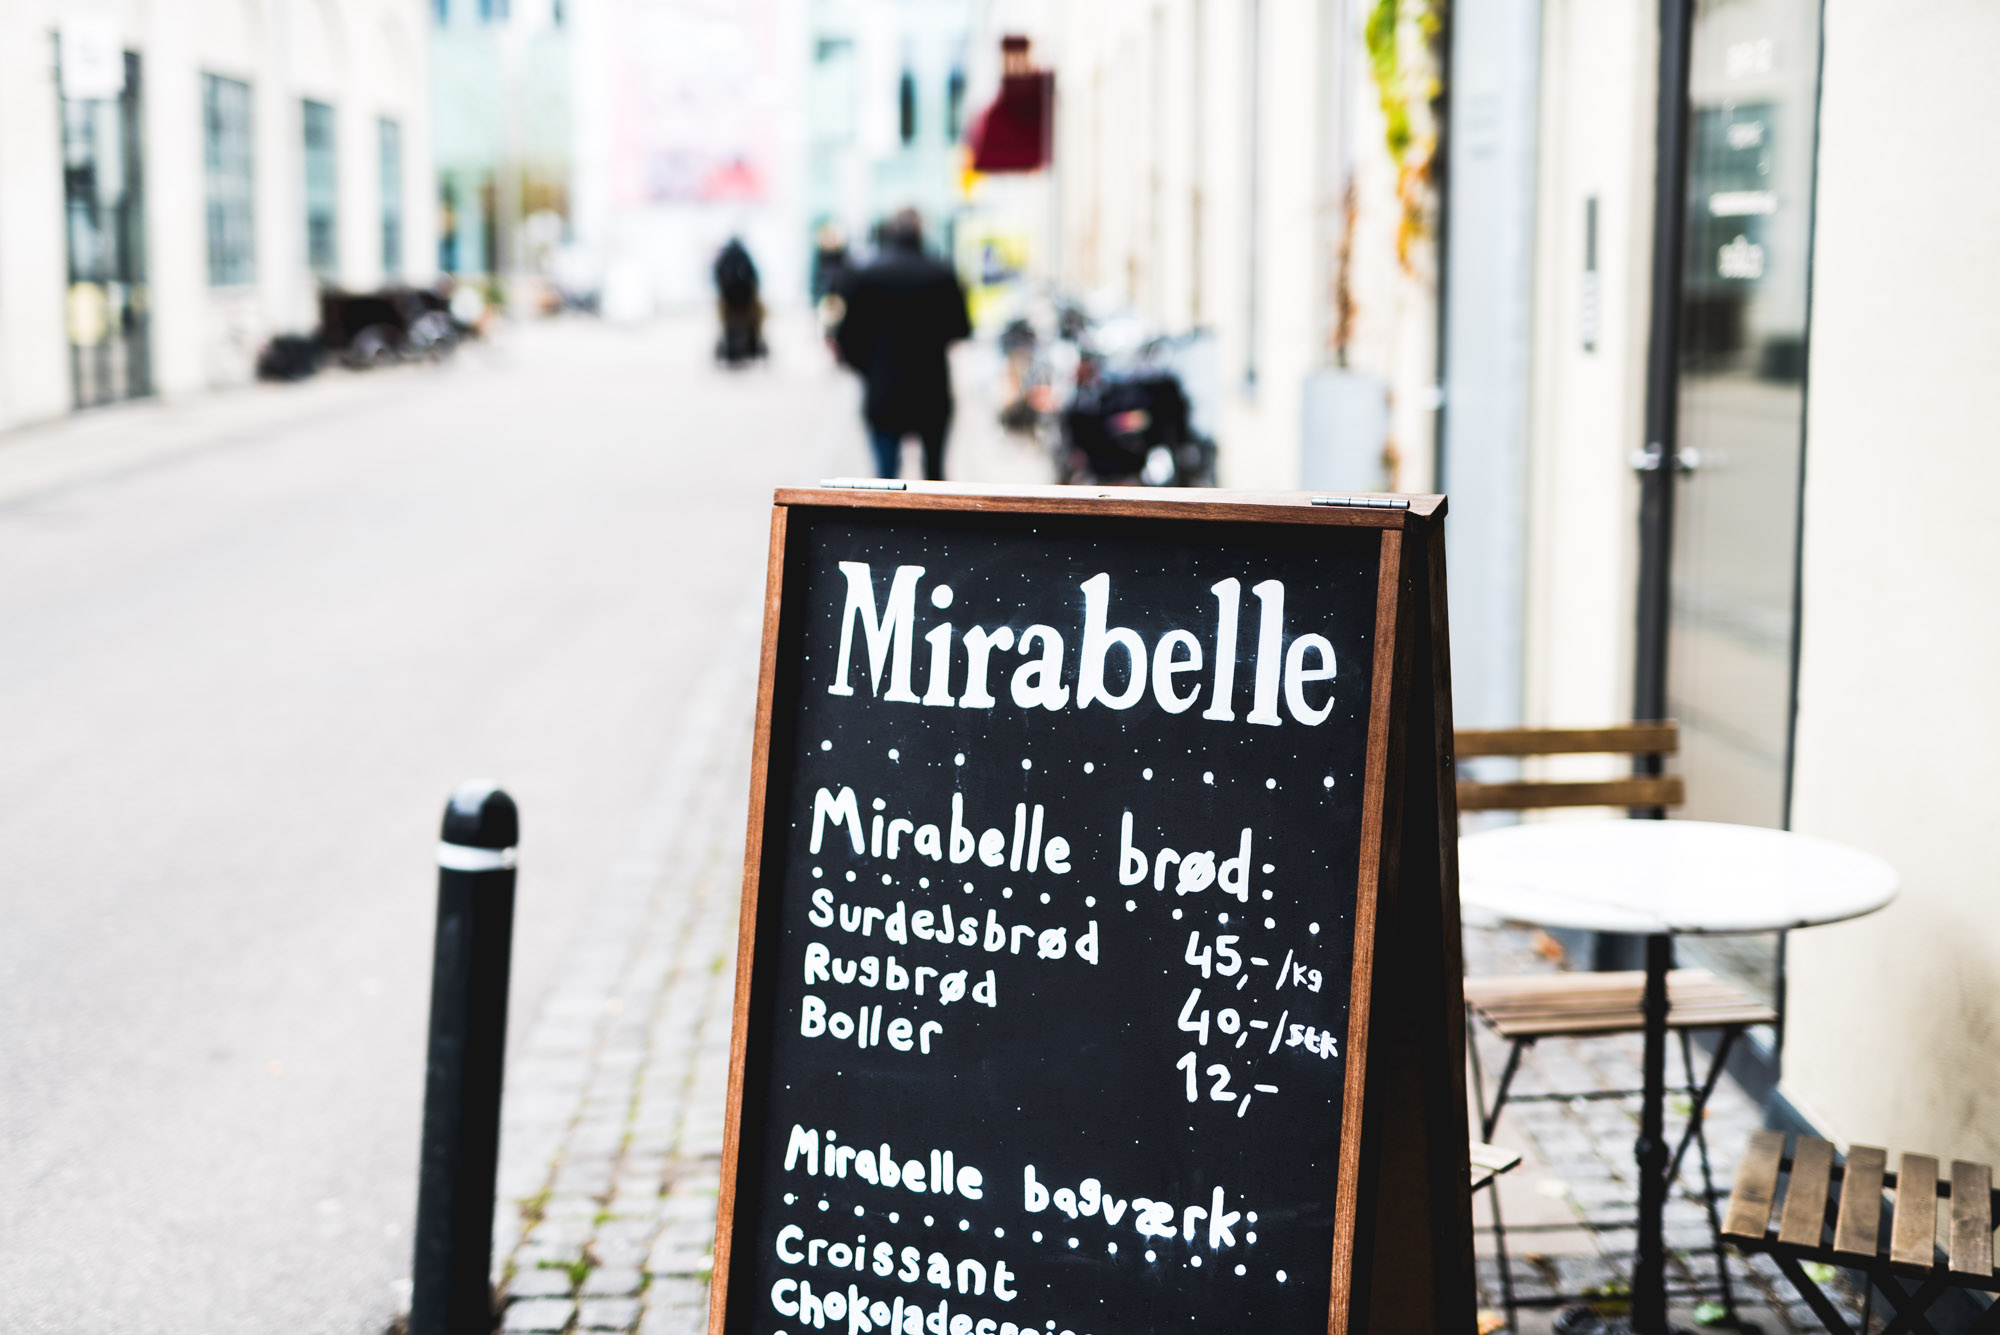 Jeff On The Road - Copenhagen - Food - Mirabelle - All photos are under Copyright © 2017 Jeff Frenette Photography / dezjeff. To use the photos, please contact me at dezjeff@me.com.